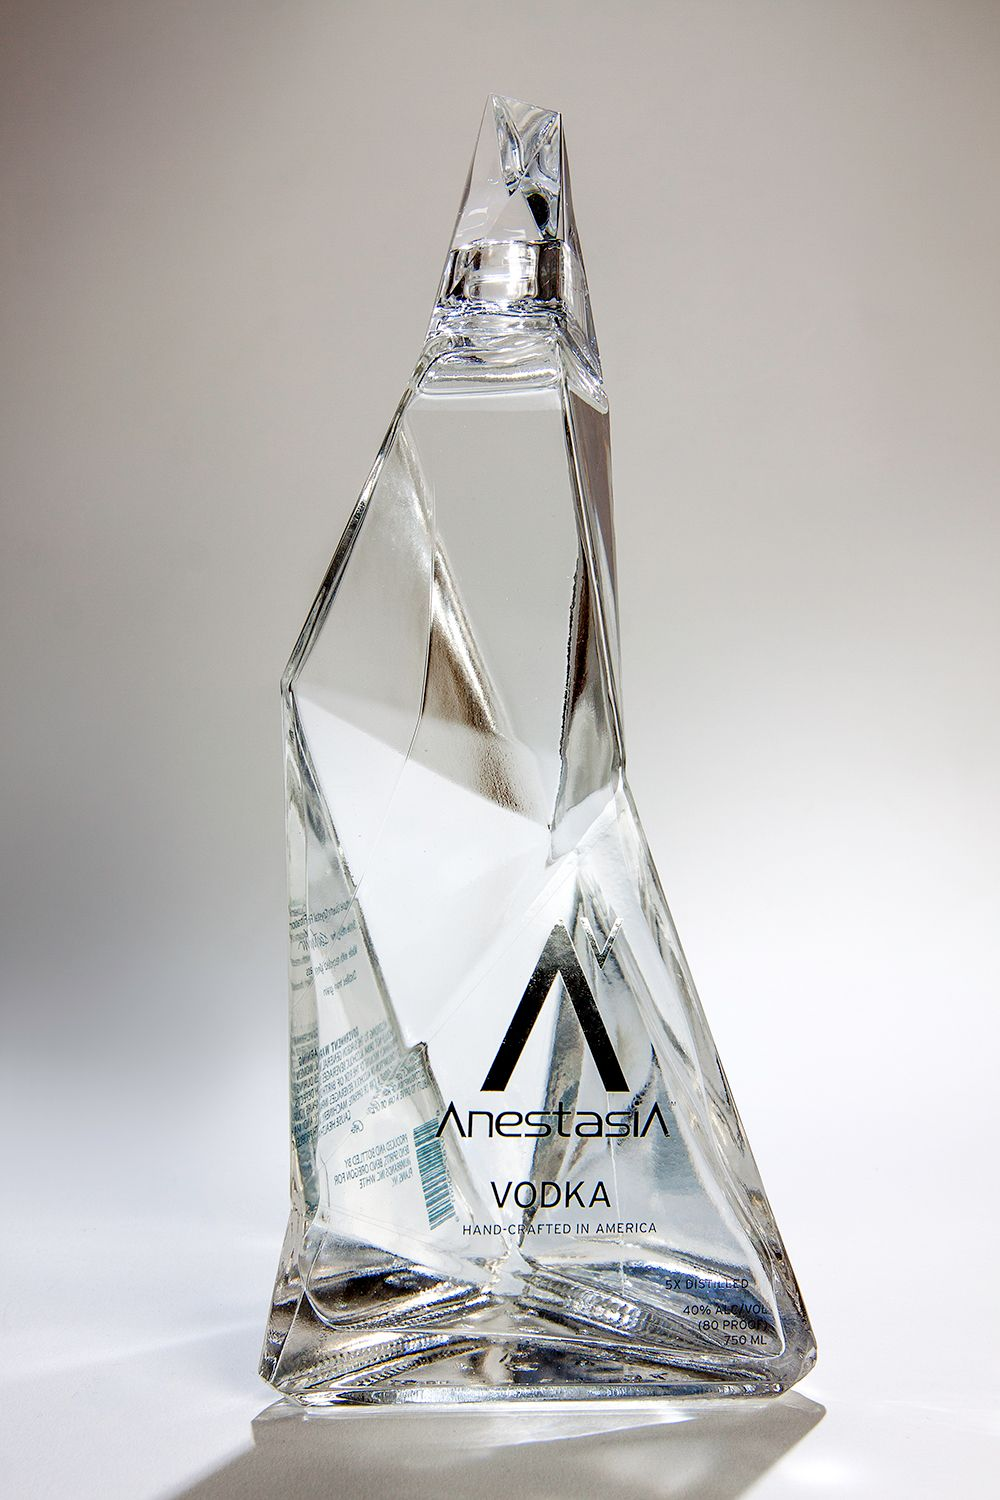 AnestasiA Vodka, Hand crafted in America